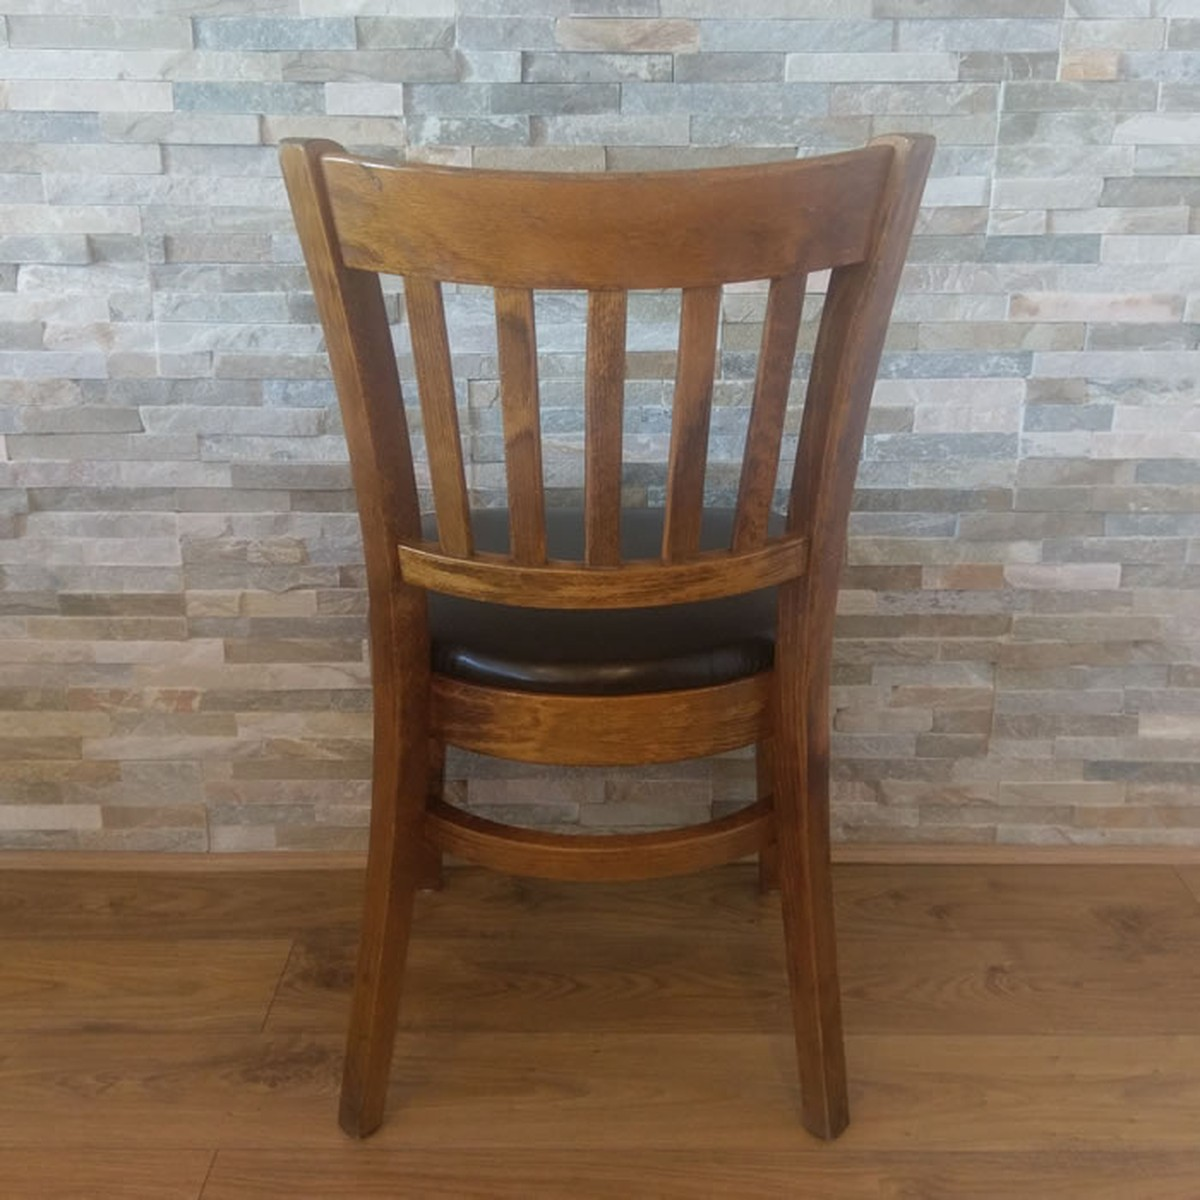 Secondhand chairs and tables pub bar furniture